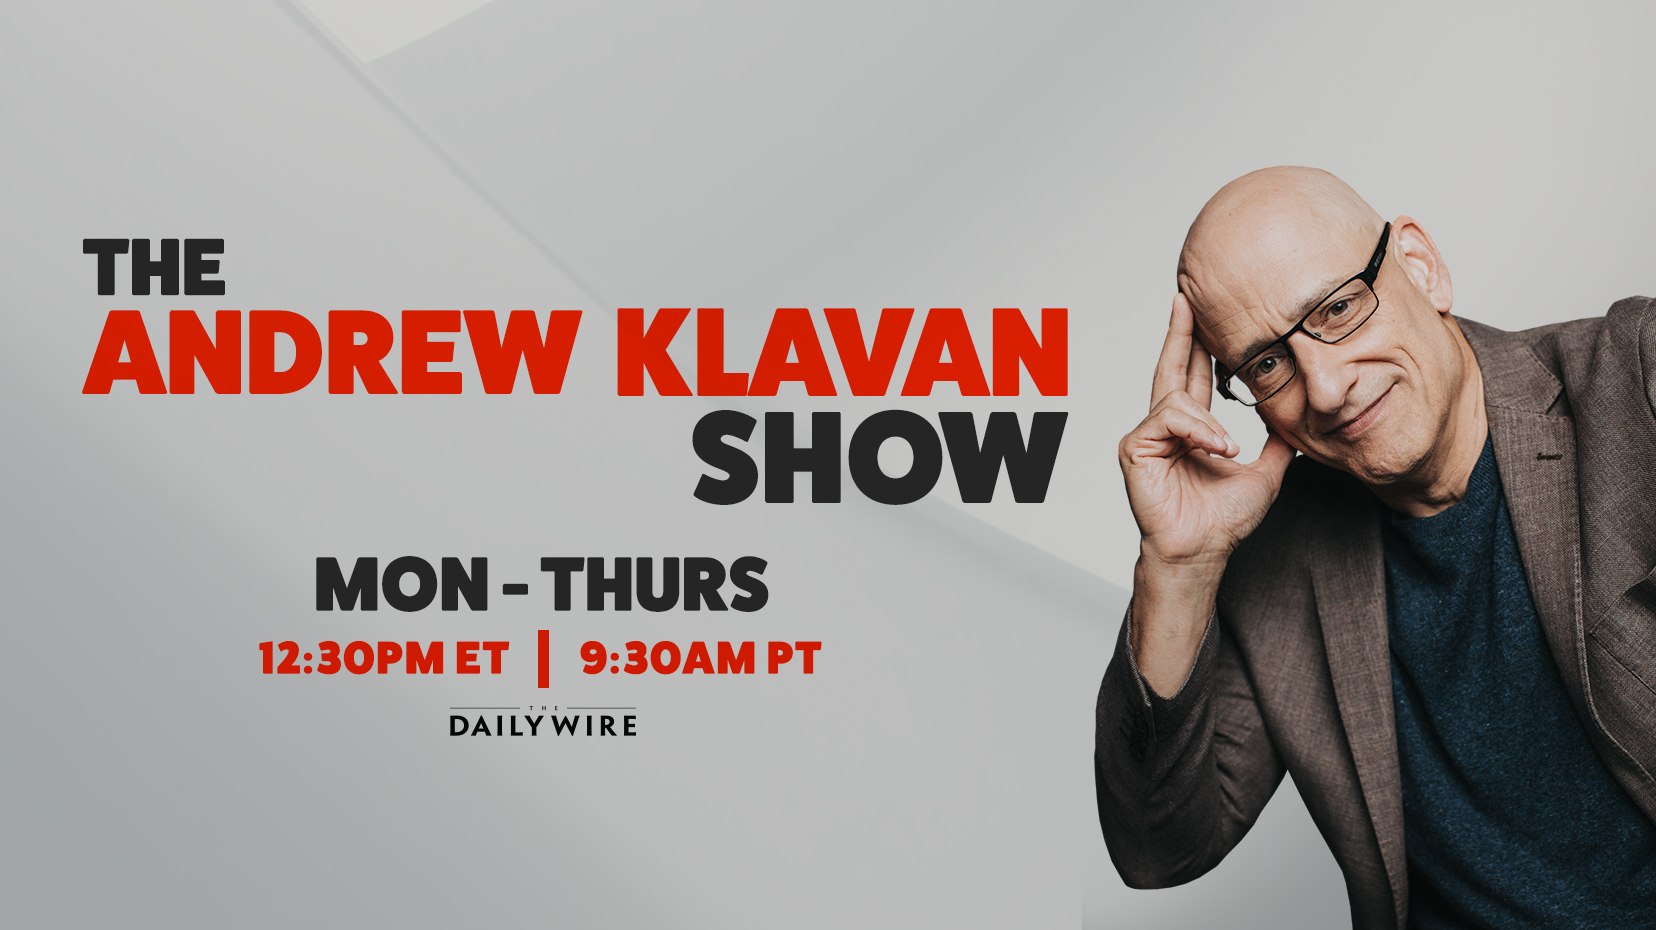 The Andrew Klavan Show on Daily Wire podcast (image)